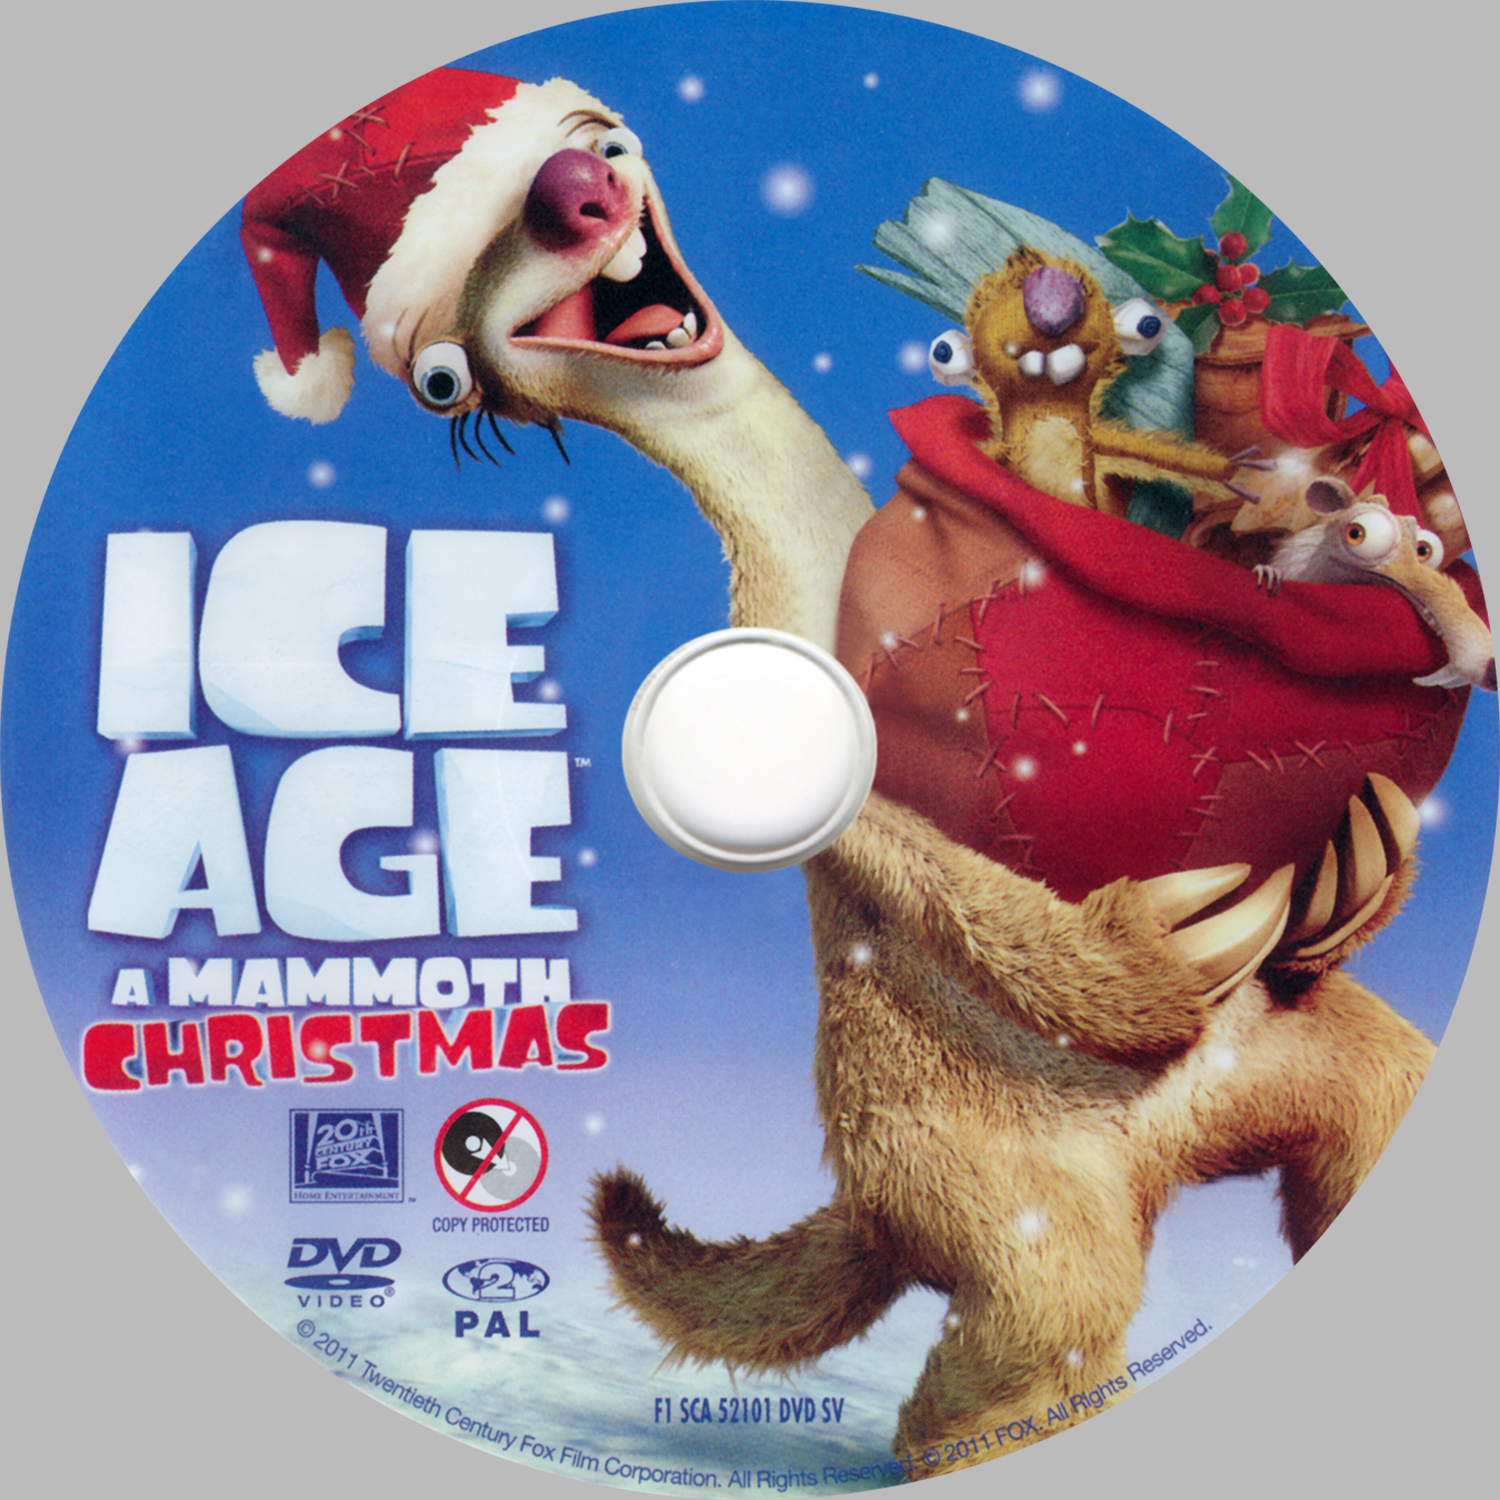 Ice Age A Mammoth Christmas.Covers Box Sk Ice Age A Mammoth Christmas High